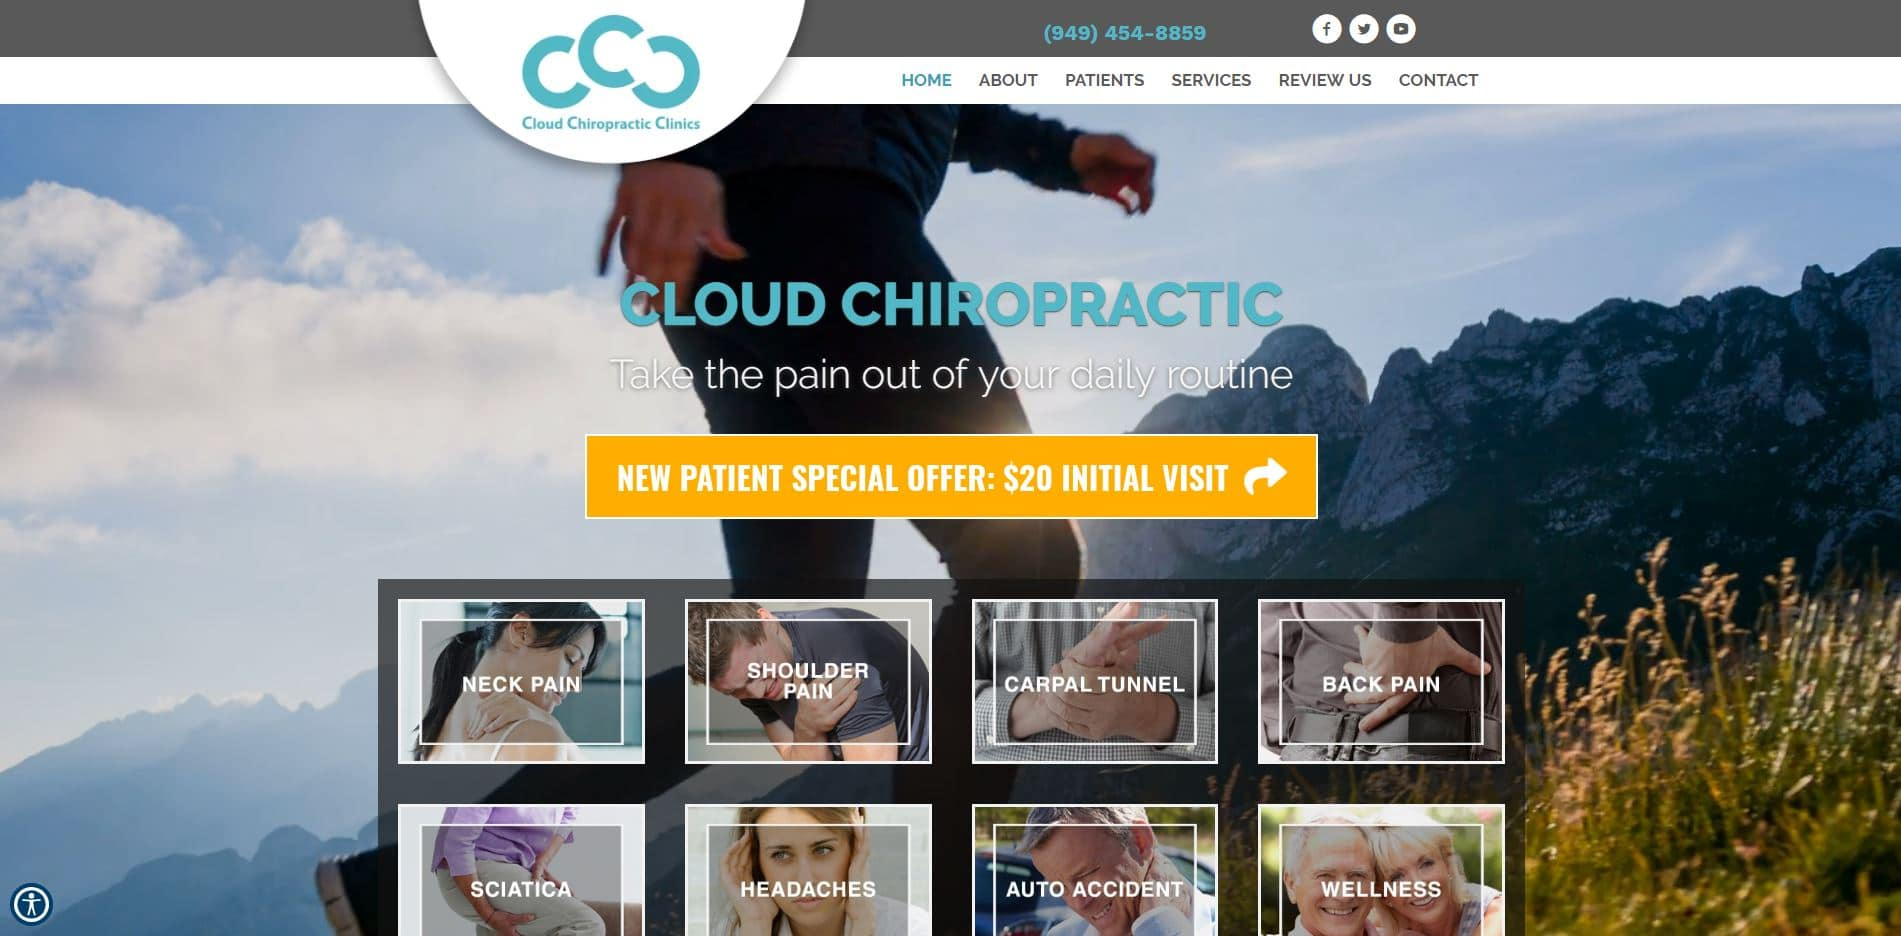 Chiropractor in Aliso Viejo